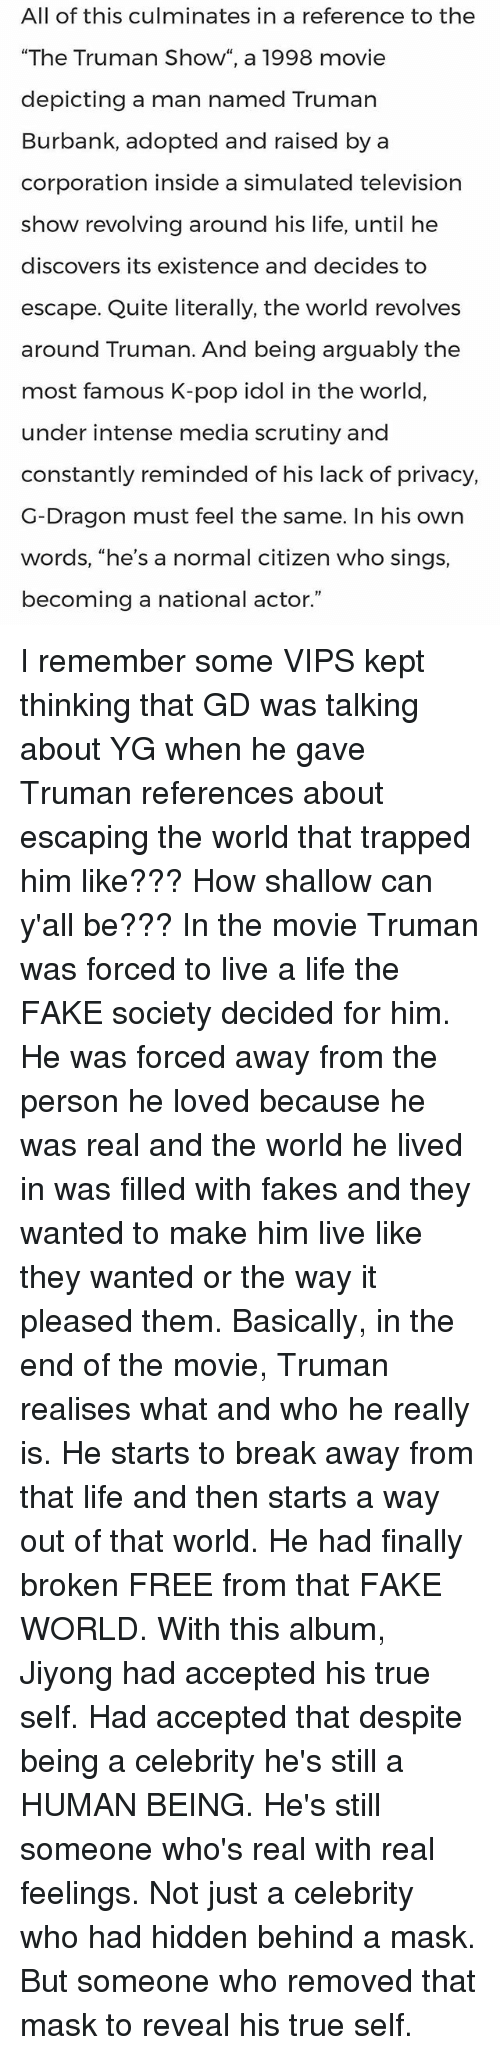 the fake life and world in the movie the truman show The delusion is named after the truman show in which truman, played by jim carey, is living a fake life his whole world is actually a big studio with hidden cameras everywhere his friends, family, and other people around him are all actors.